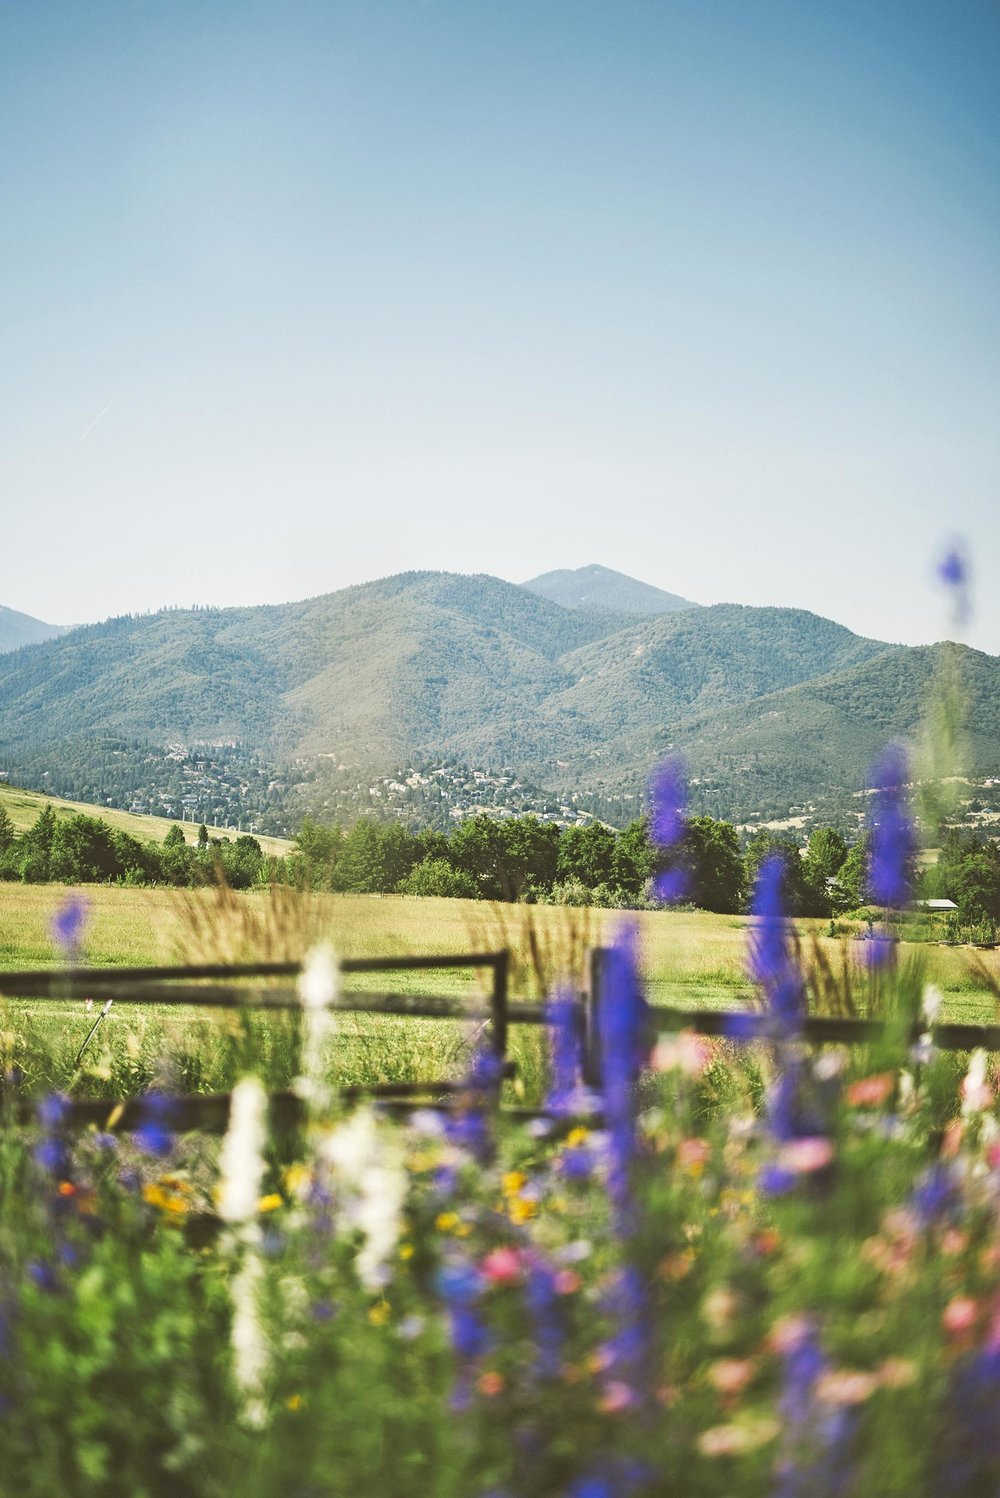 Wildflower Garden + Mountain Views + Scenic Water-wise